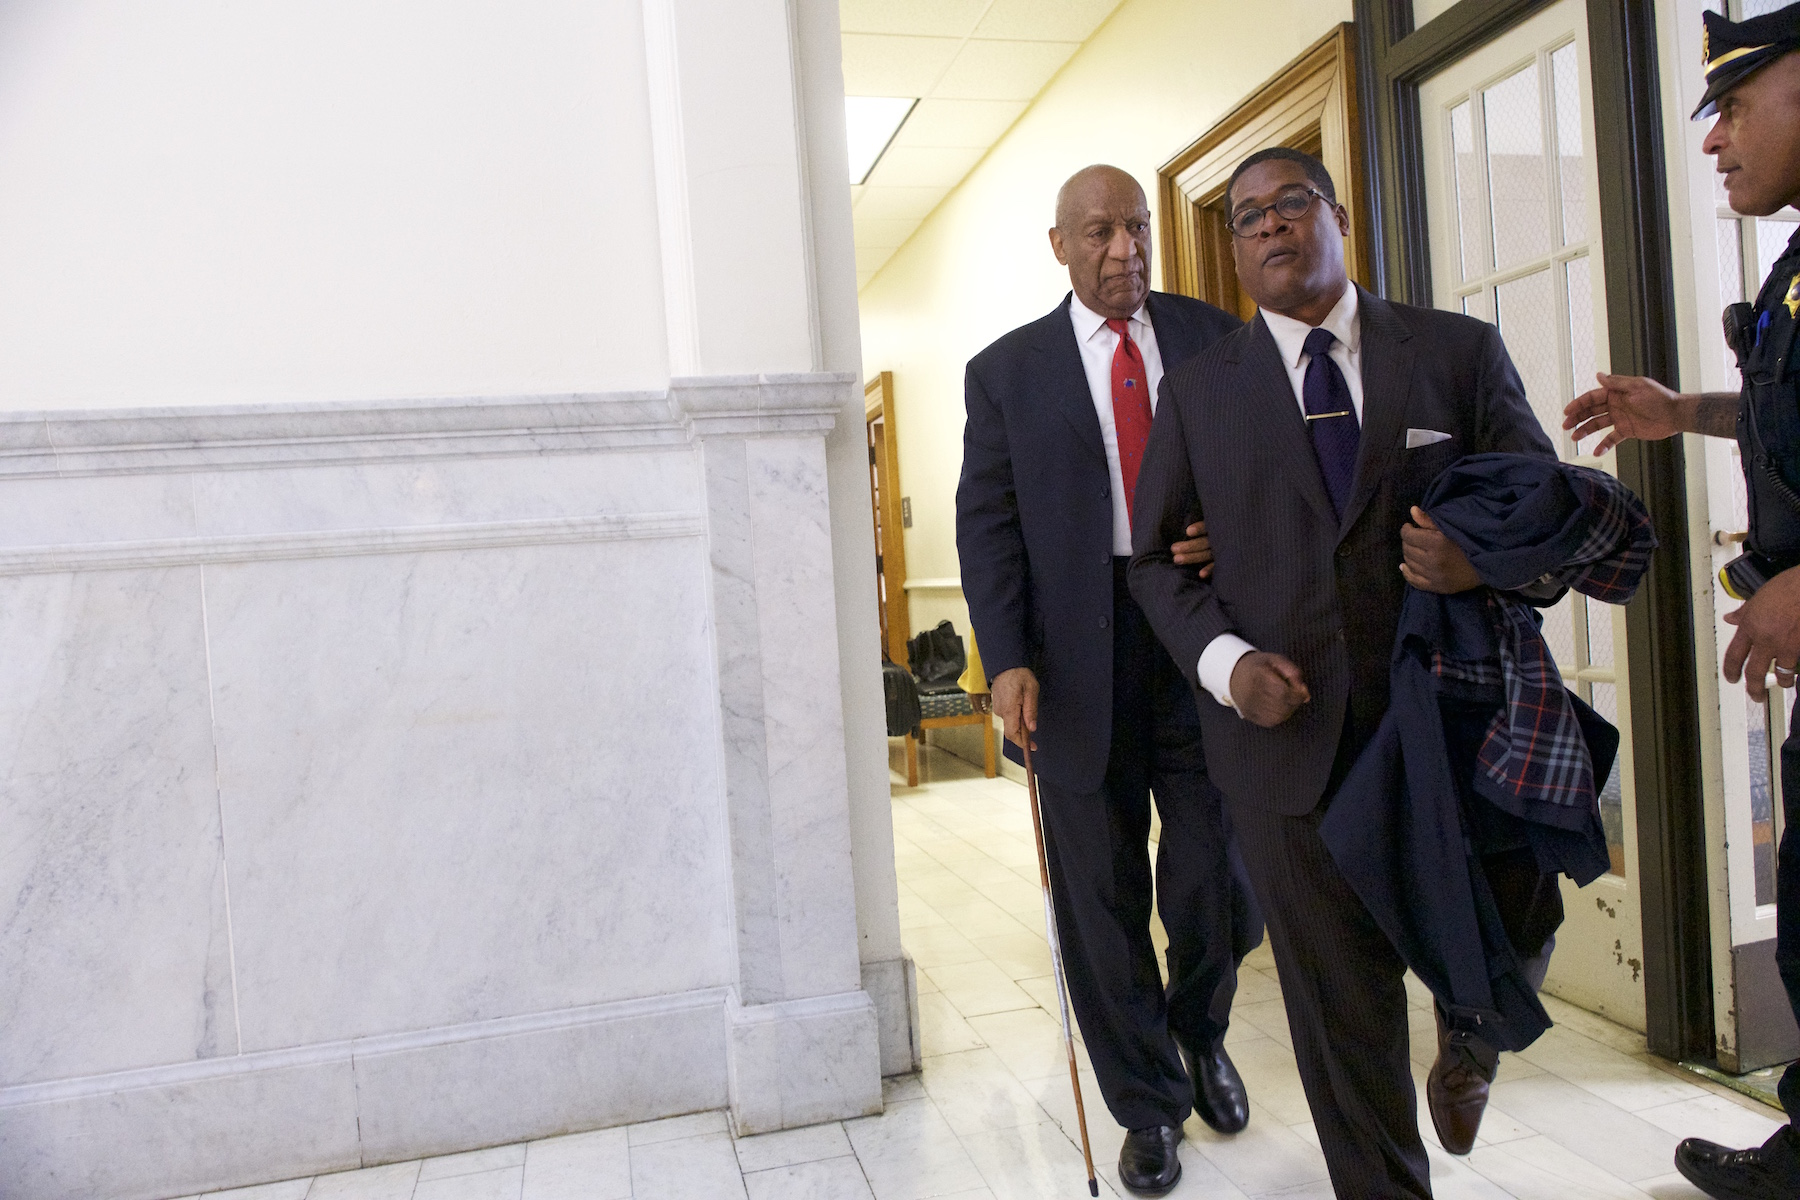 <div class='meta'><div class='origin-logo' data-origin='none'></div><span class='caption-text' data-credit='Dominick Reuter/AFP/Getty Images'>Bill Cosby departs the Montgomery County Courthouse with his publicist, Andrew Wyatt, after being found guilty on all counts in his sexual assault retrial.</span></div>